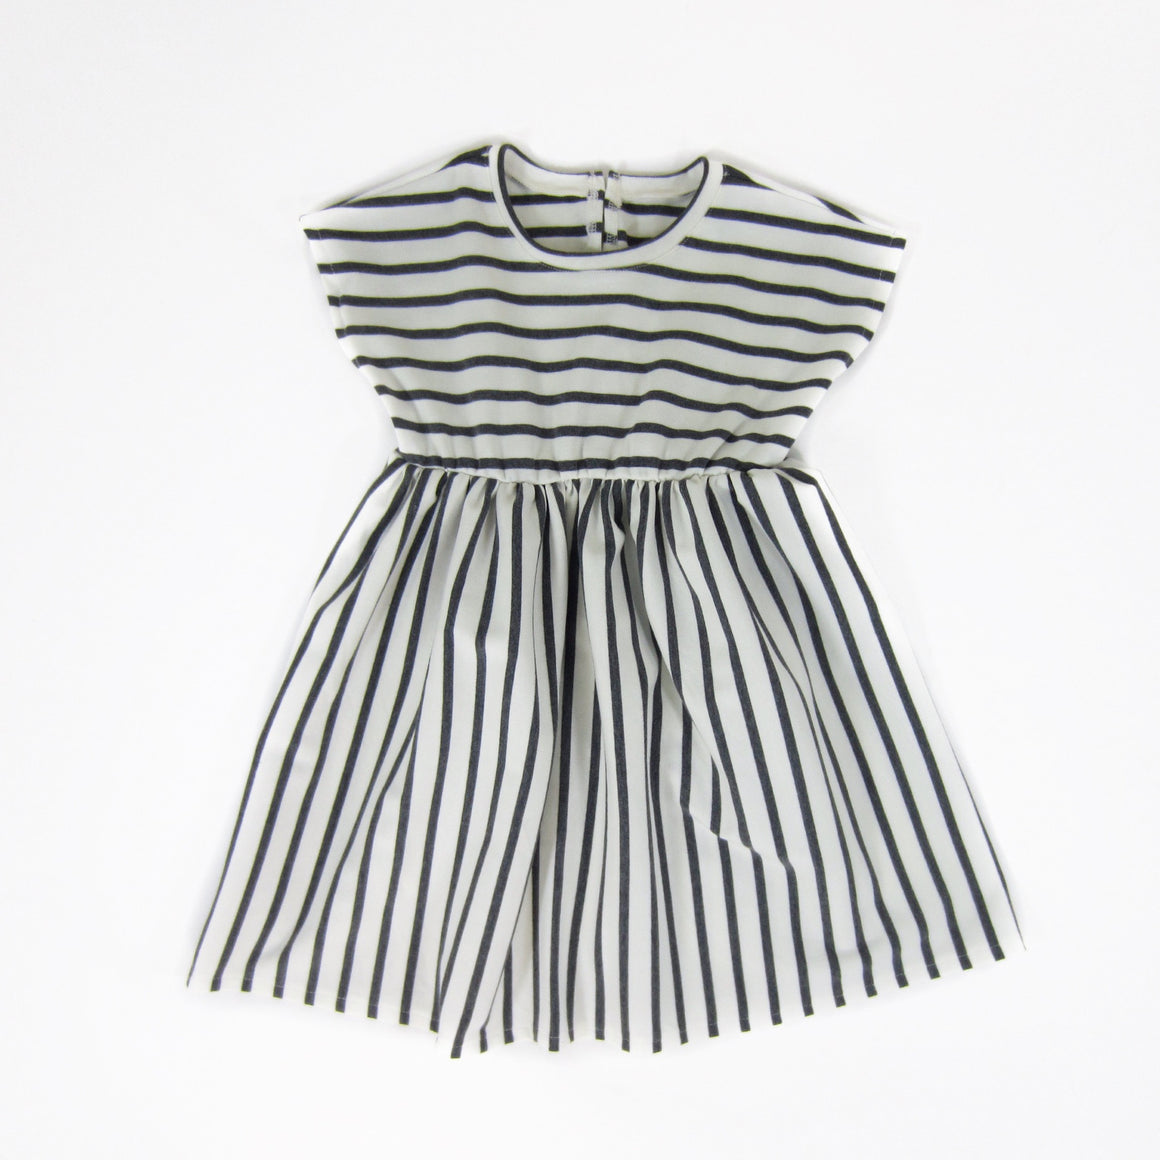 Toddler Girls Grey Striped Dress